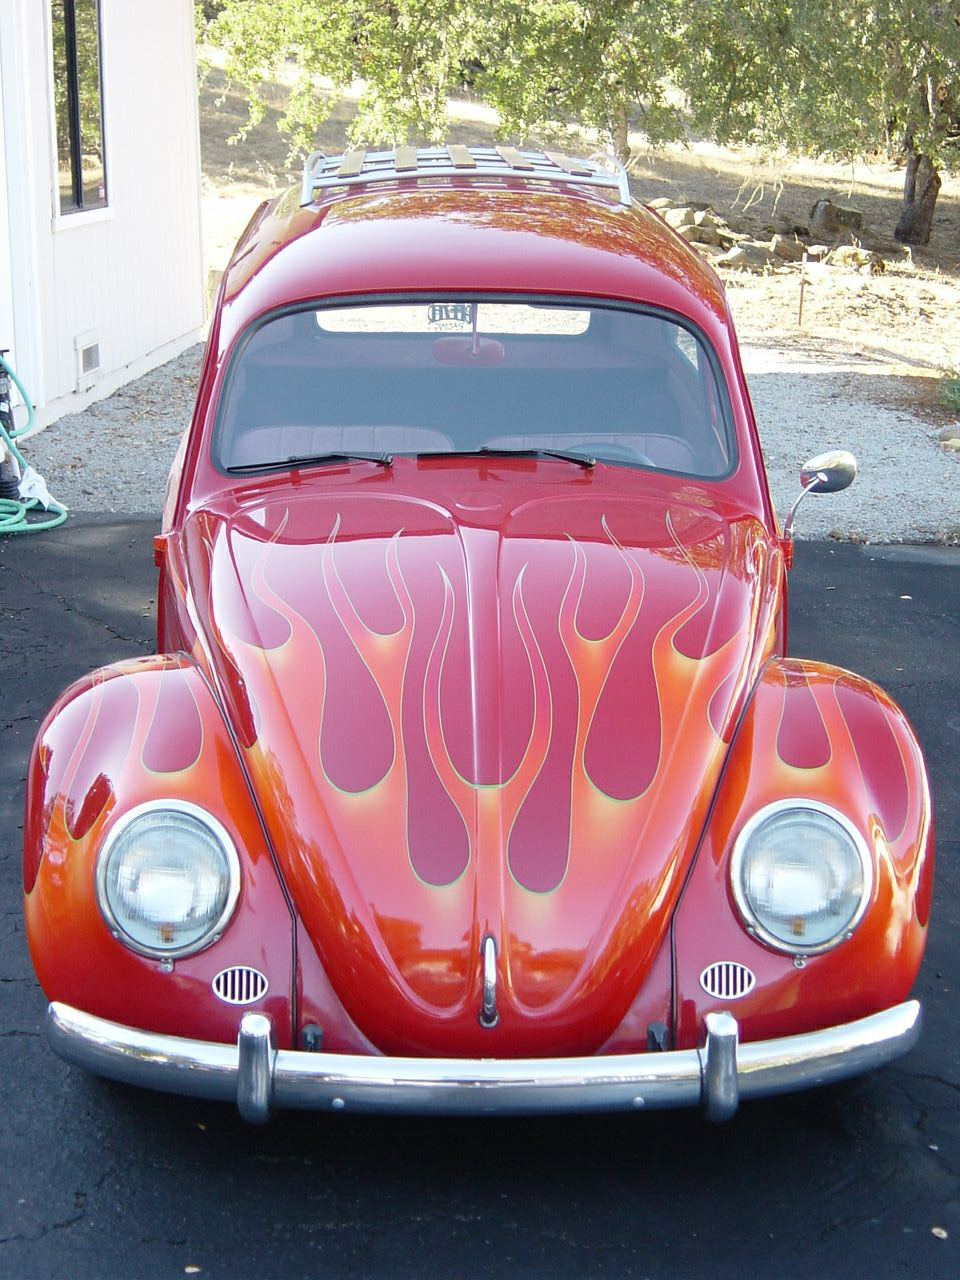 Hqdefault likewise Side Profile Web also Volkswagen Bug Ragtop Vw Sunroofbeetle Oval Split furthermore Maxresdefault as well Maxresdefault. on vw bug engine